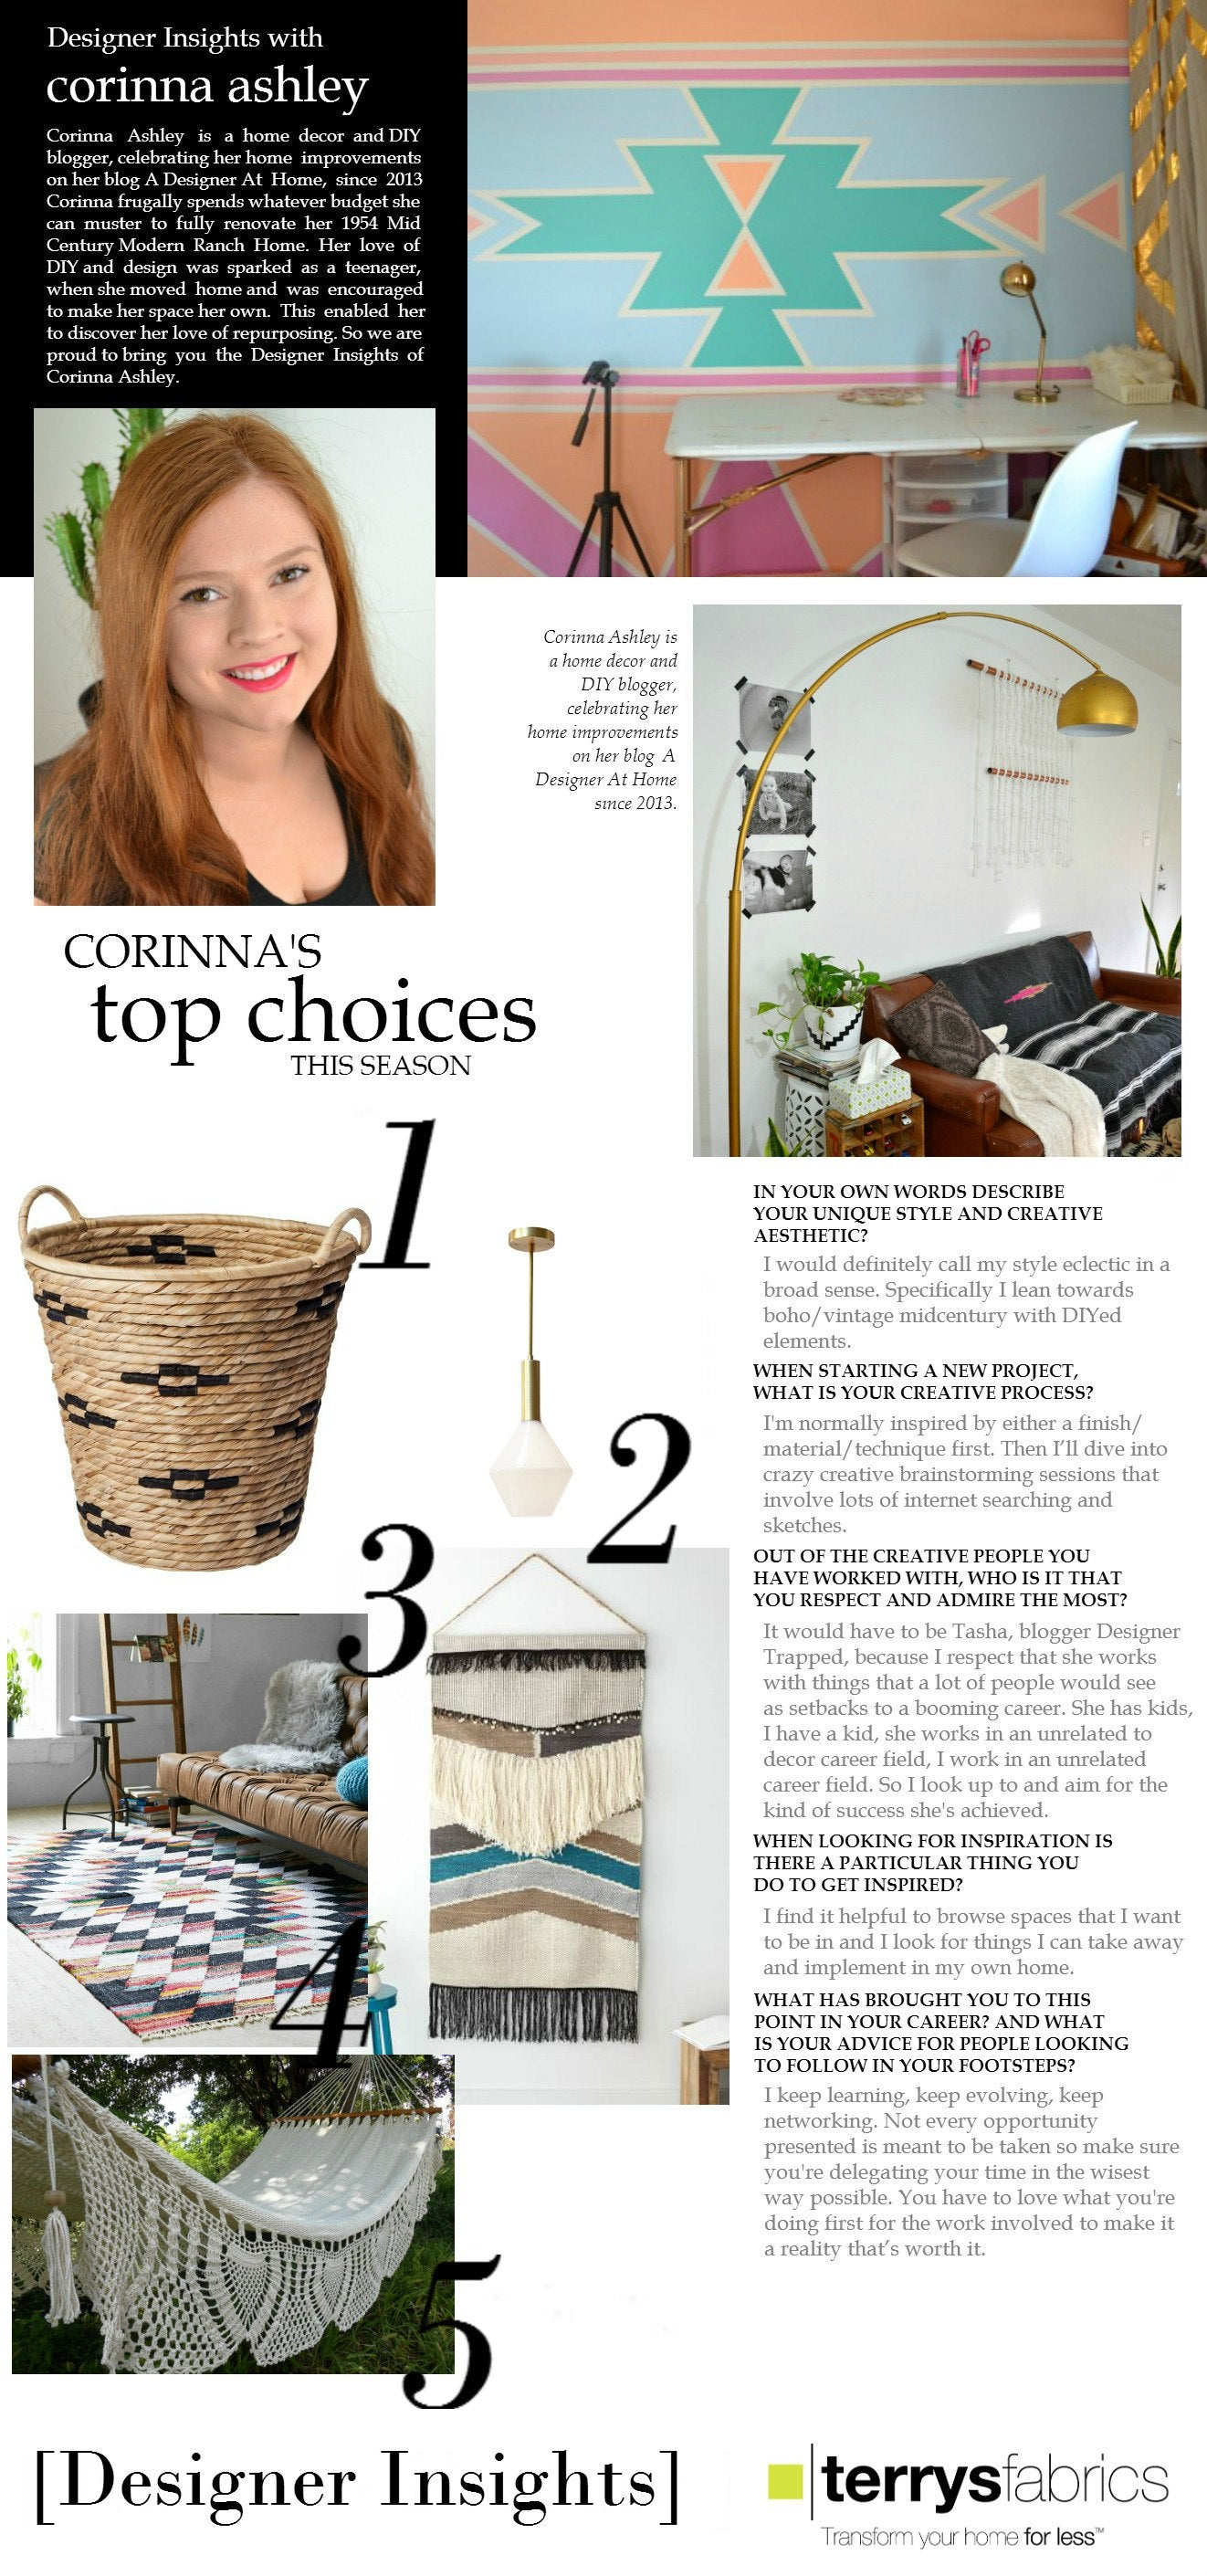 Designer Insights - Corinna Ashley